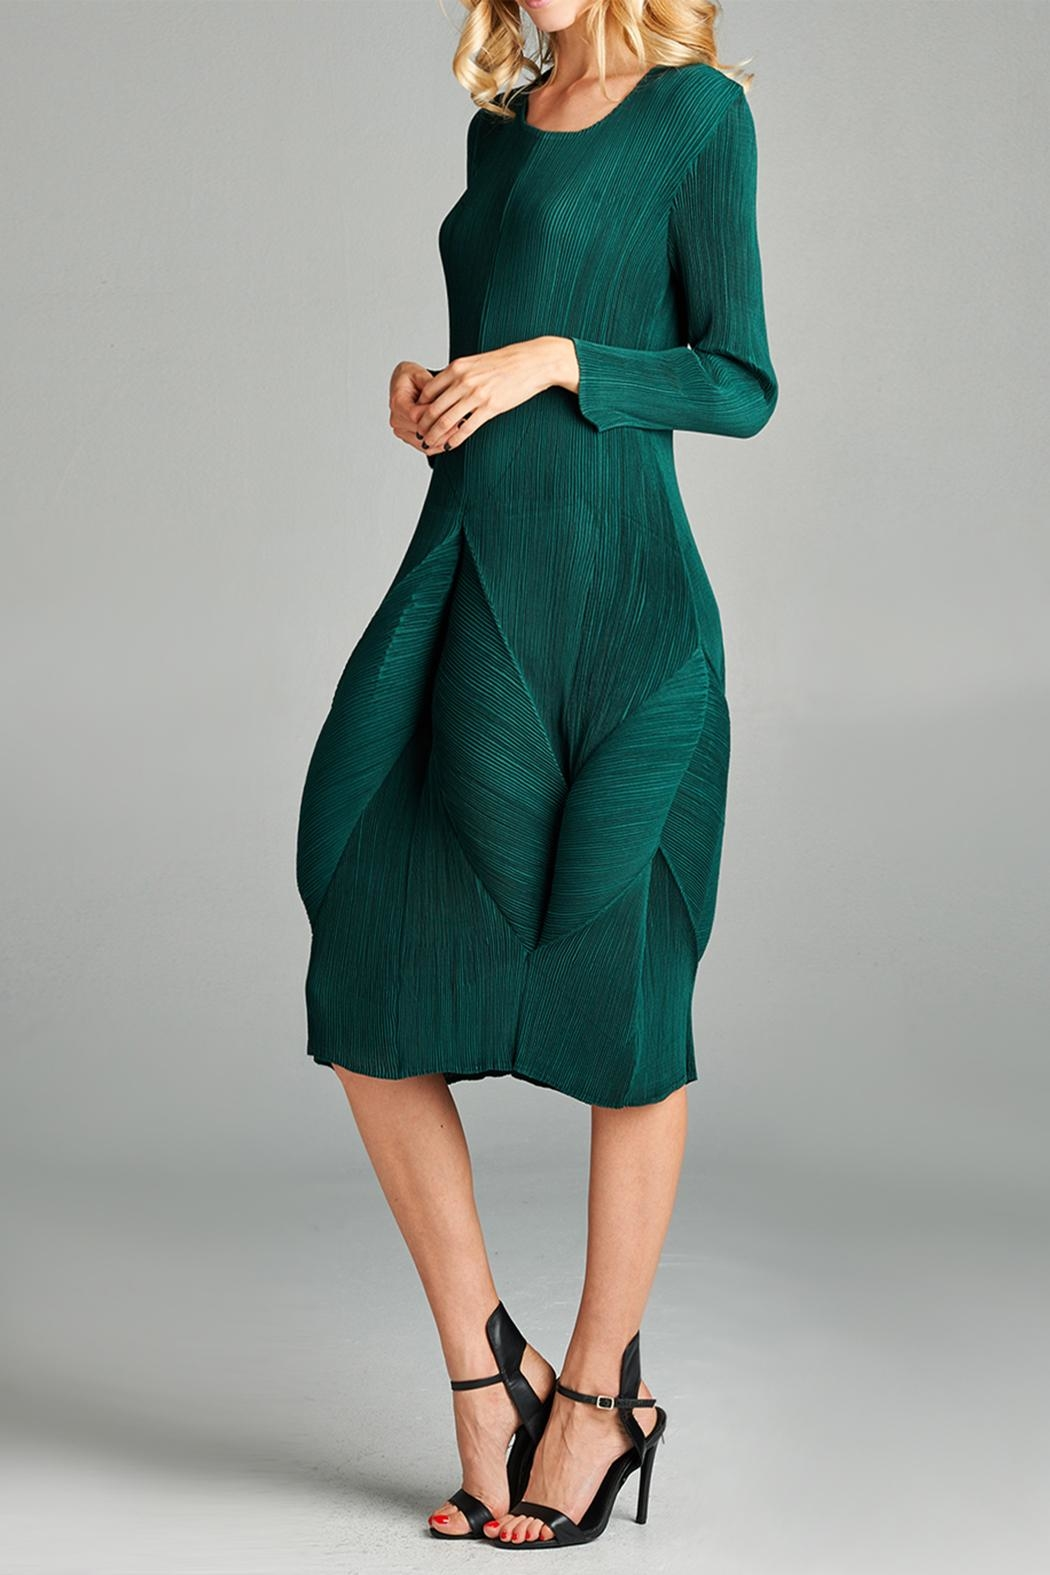 Nabisplace Blooming Pleated Dress - Side Cropped Image